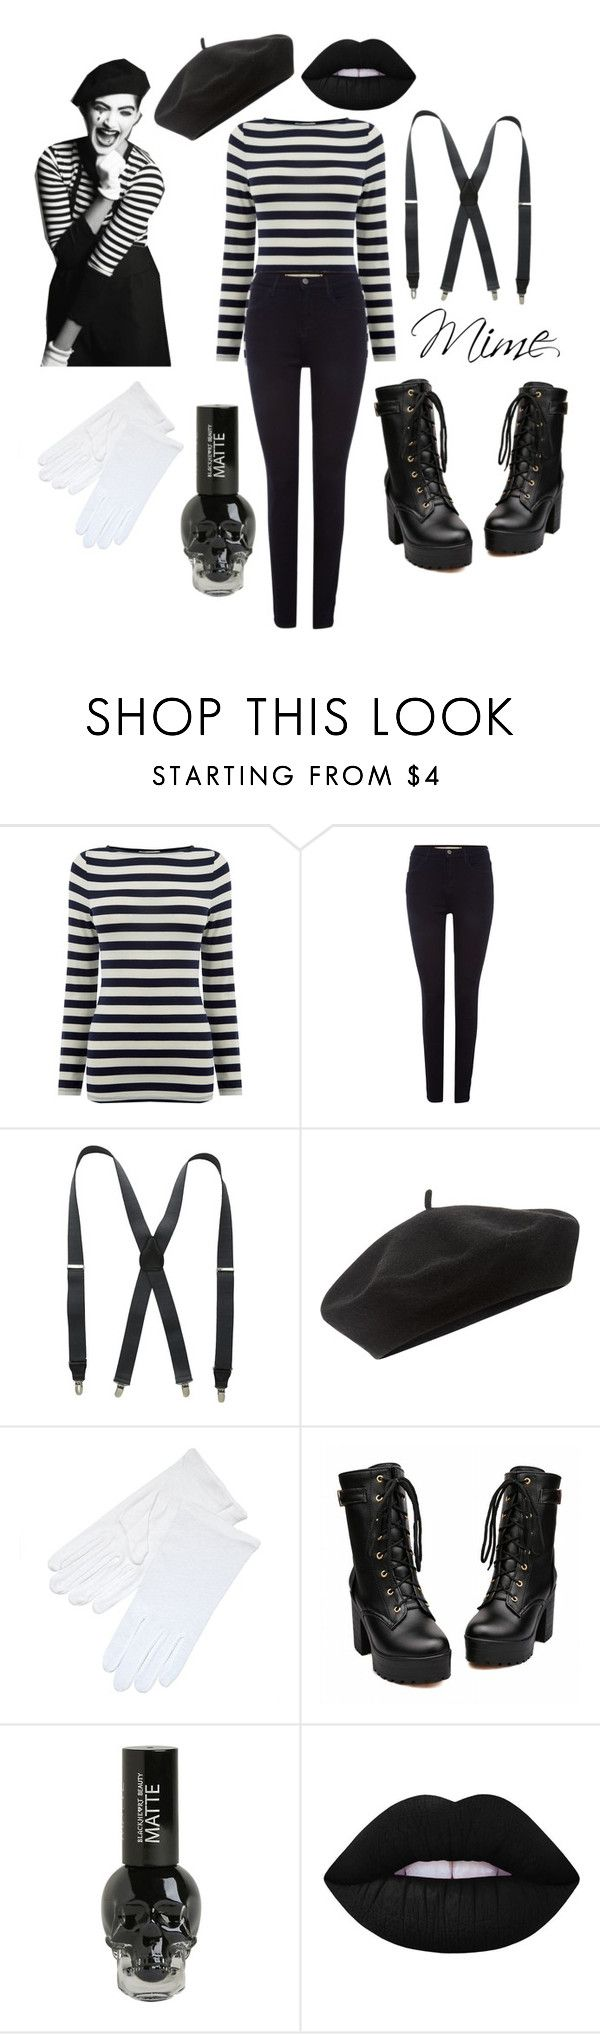 """Mime costume"" by fob1fan ❤ liked on Polyvore featuring Sonam Life, Wrangler, Stacy Adams, Accessorize and Lime Crime"